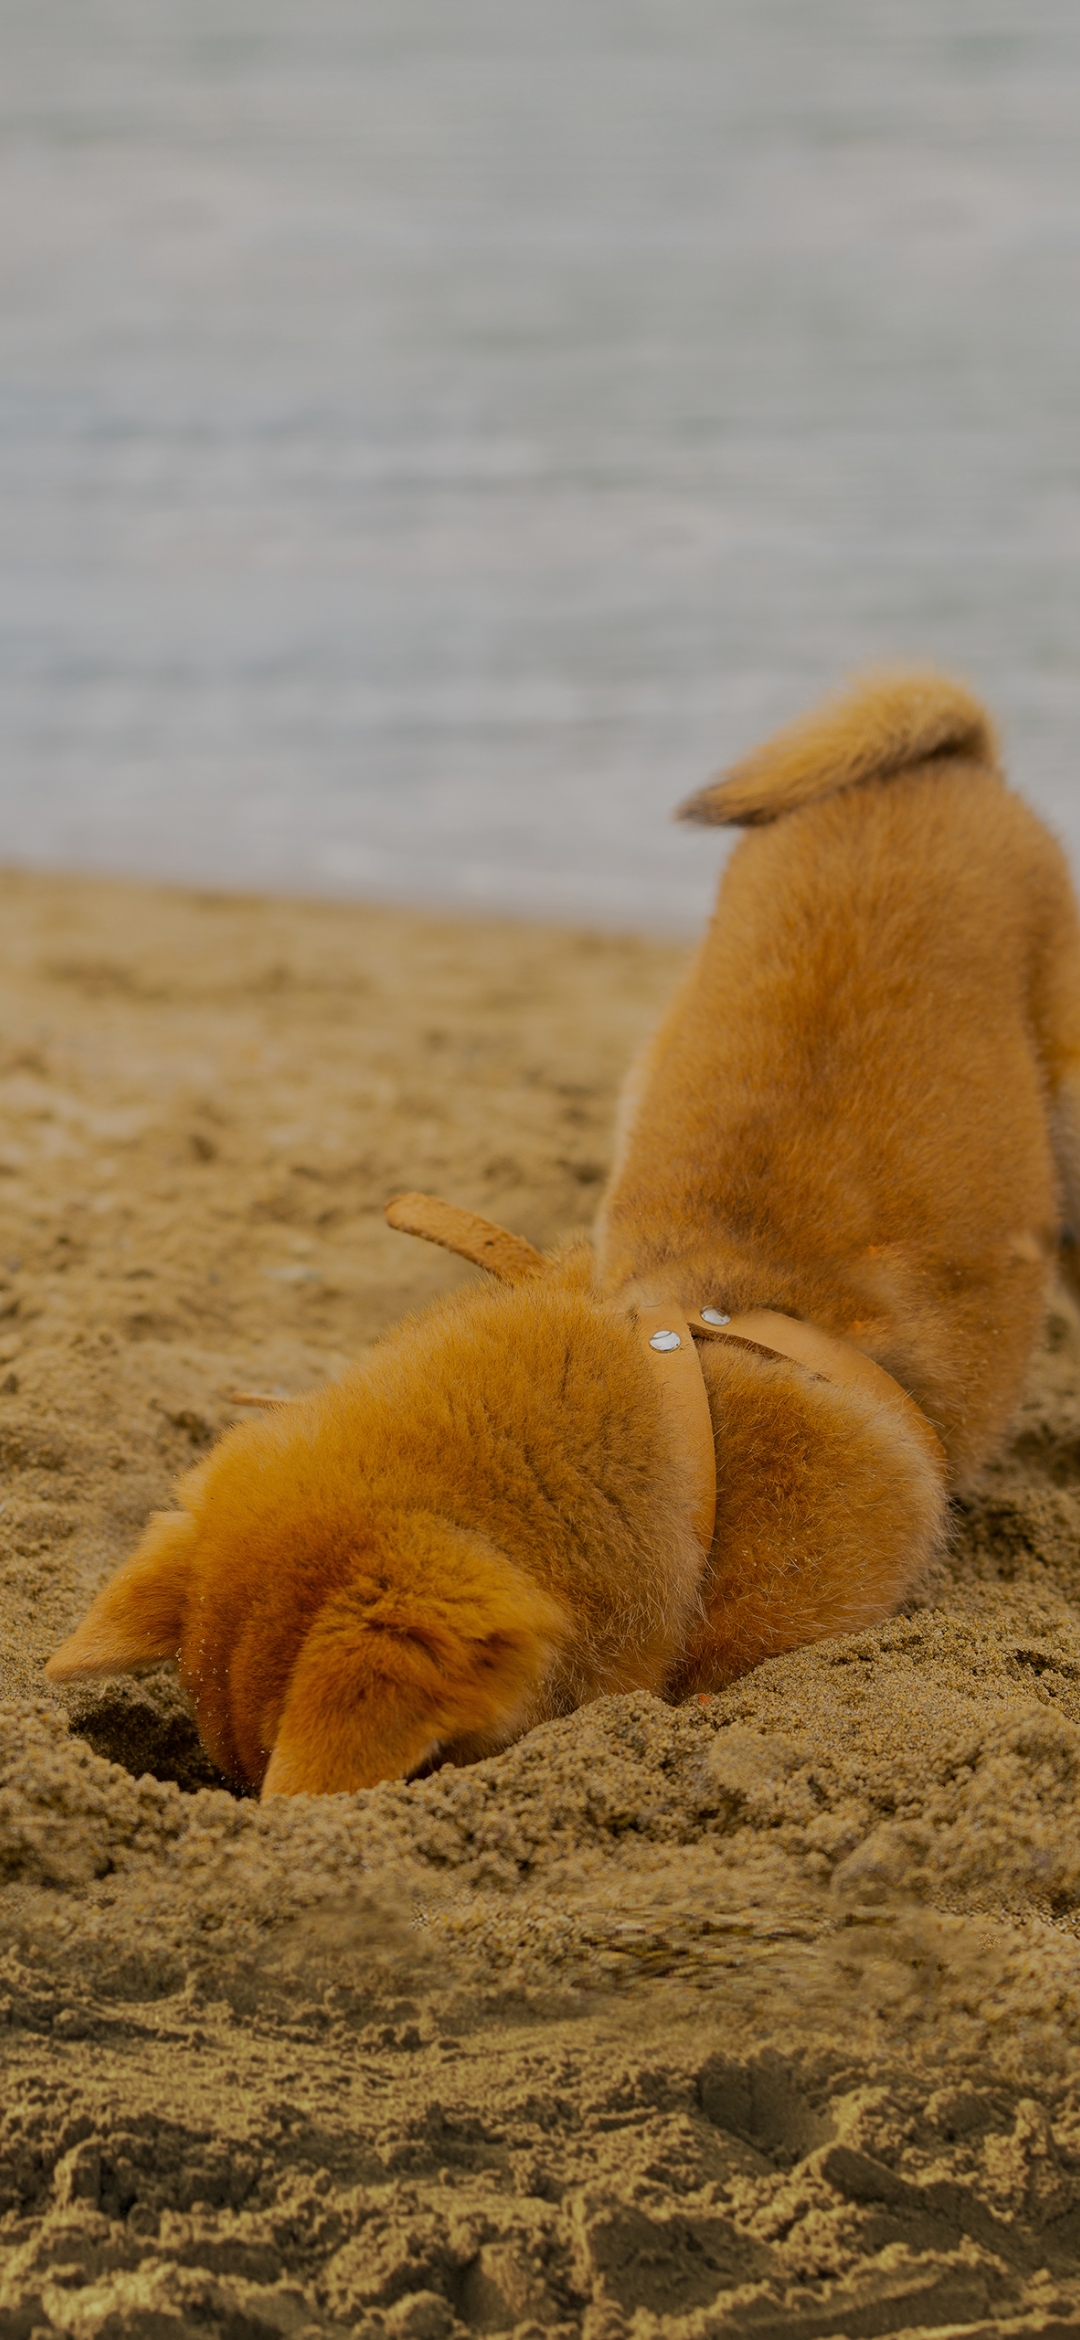 Dog digging up hole in a sand